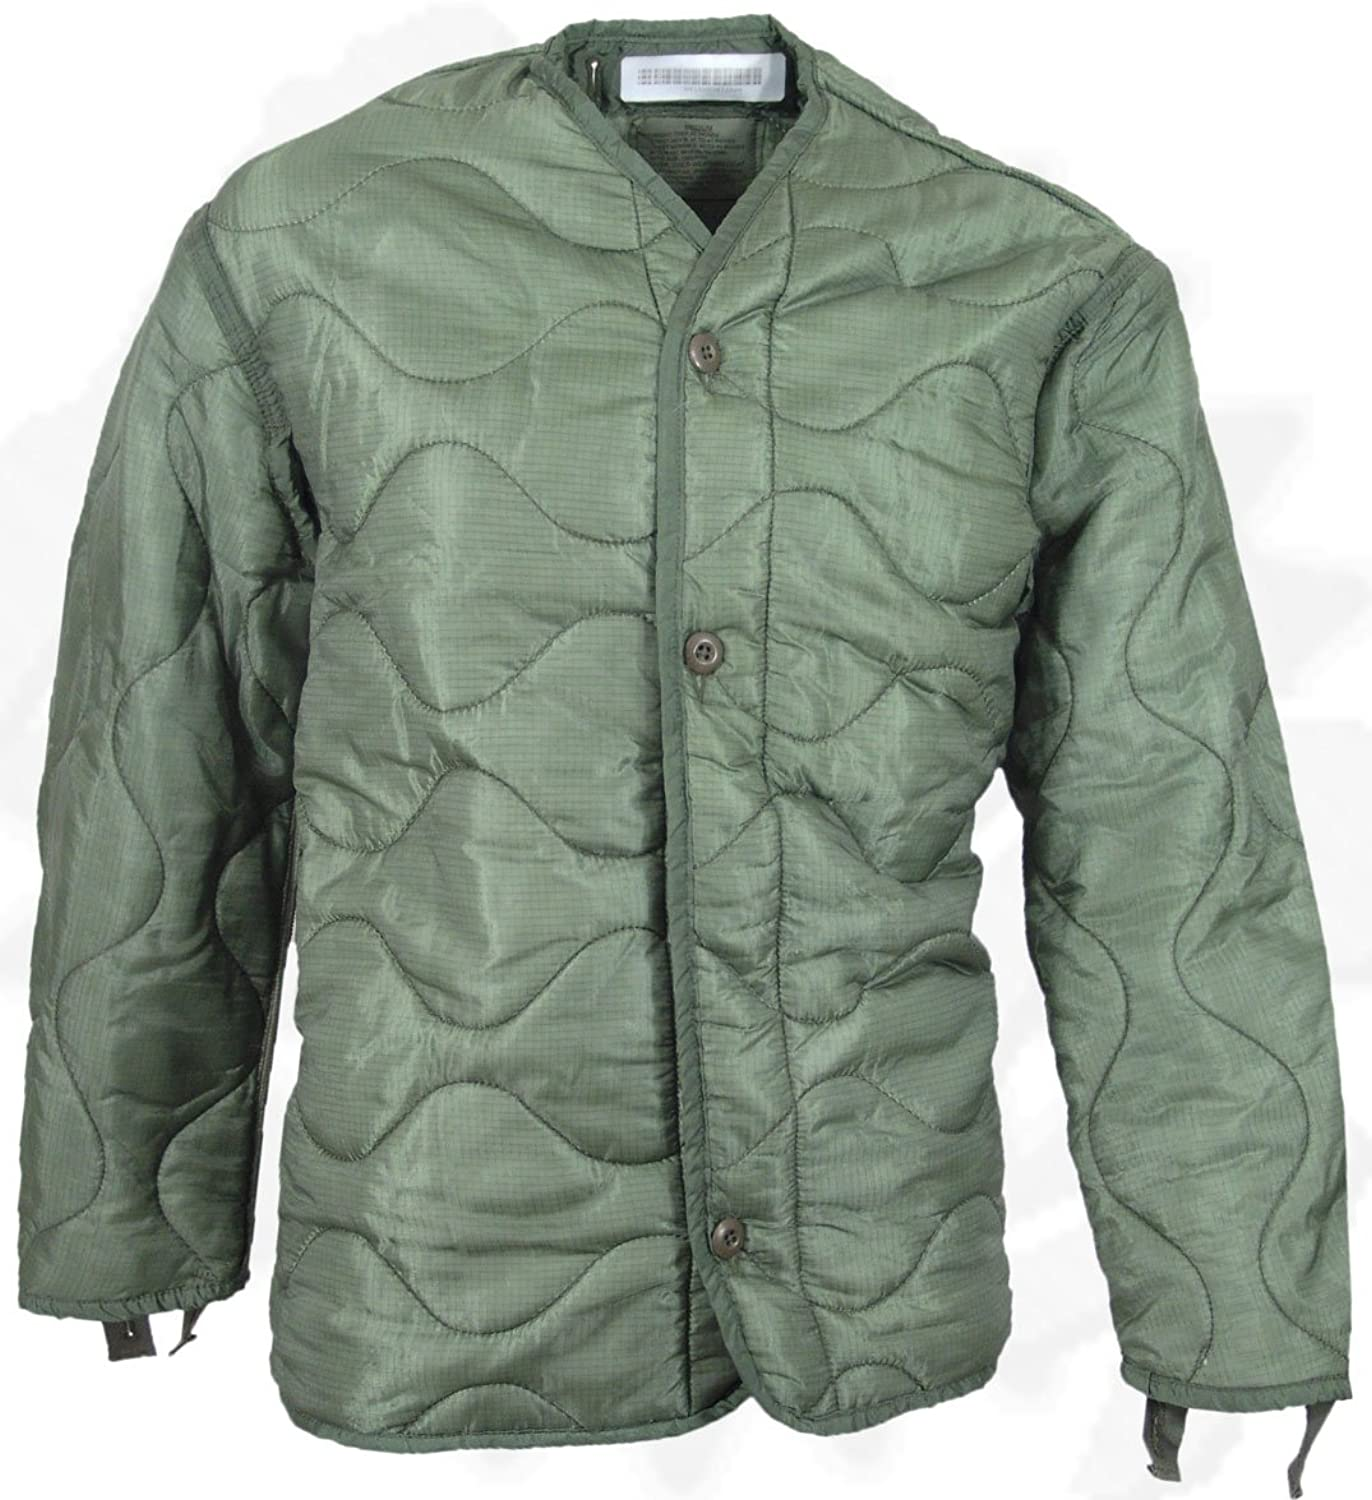 Amazon.com: Field Jacket Liner, M-65, Olive Drab--Genuine Military ...